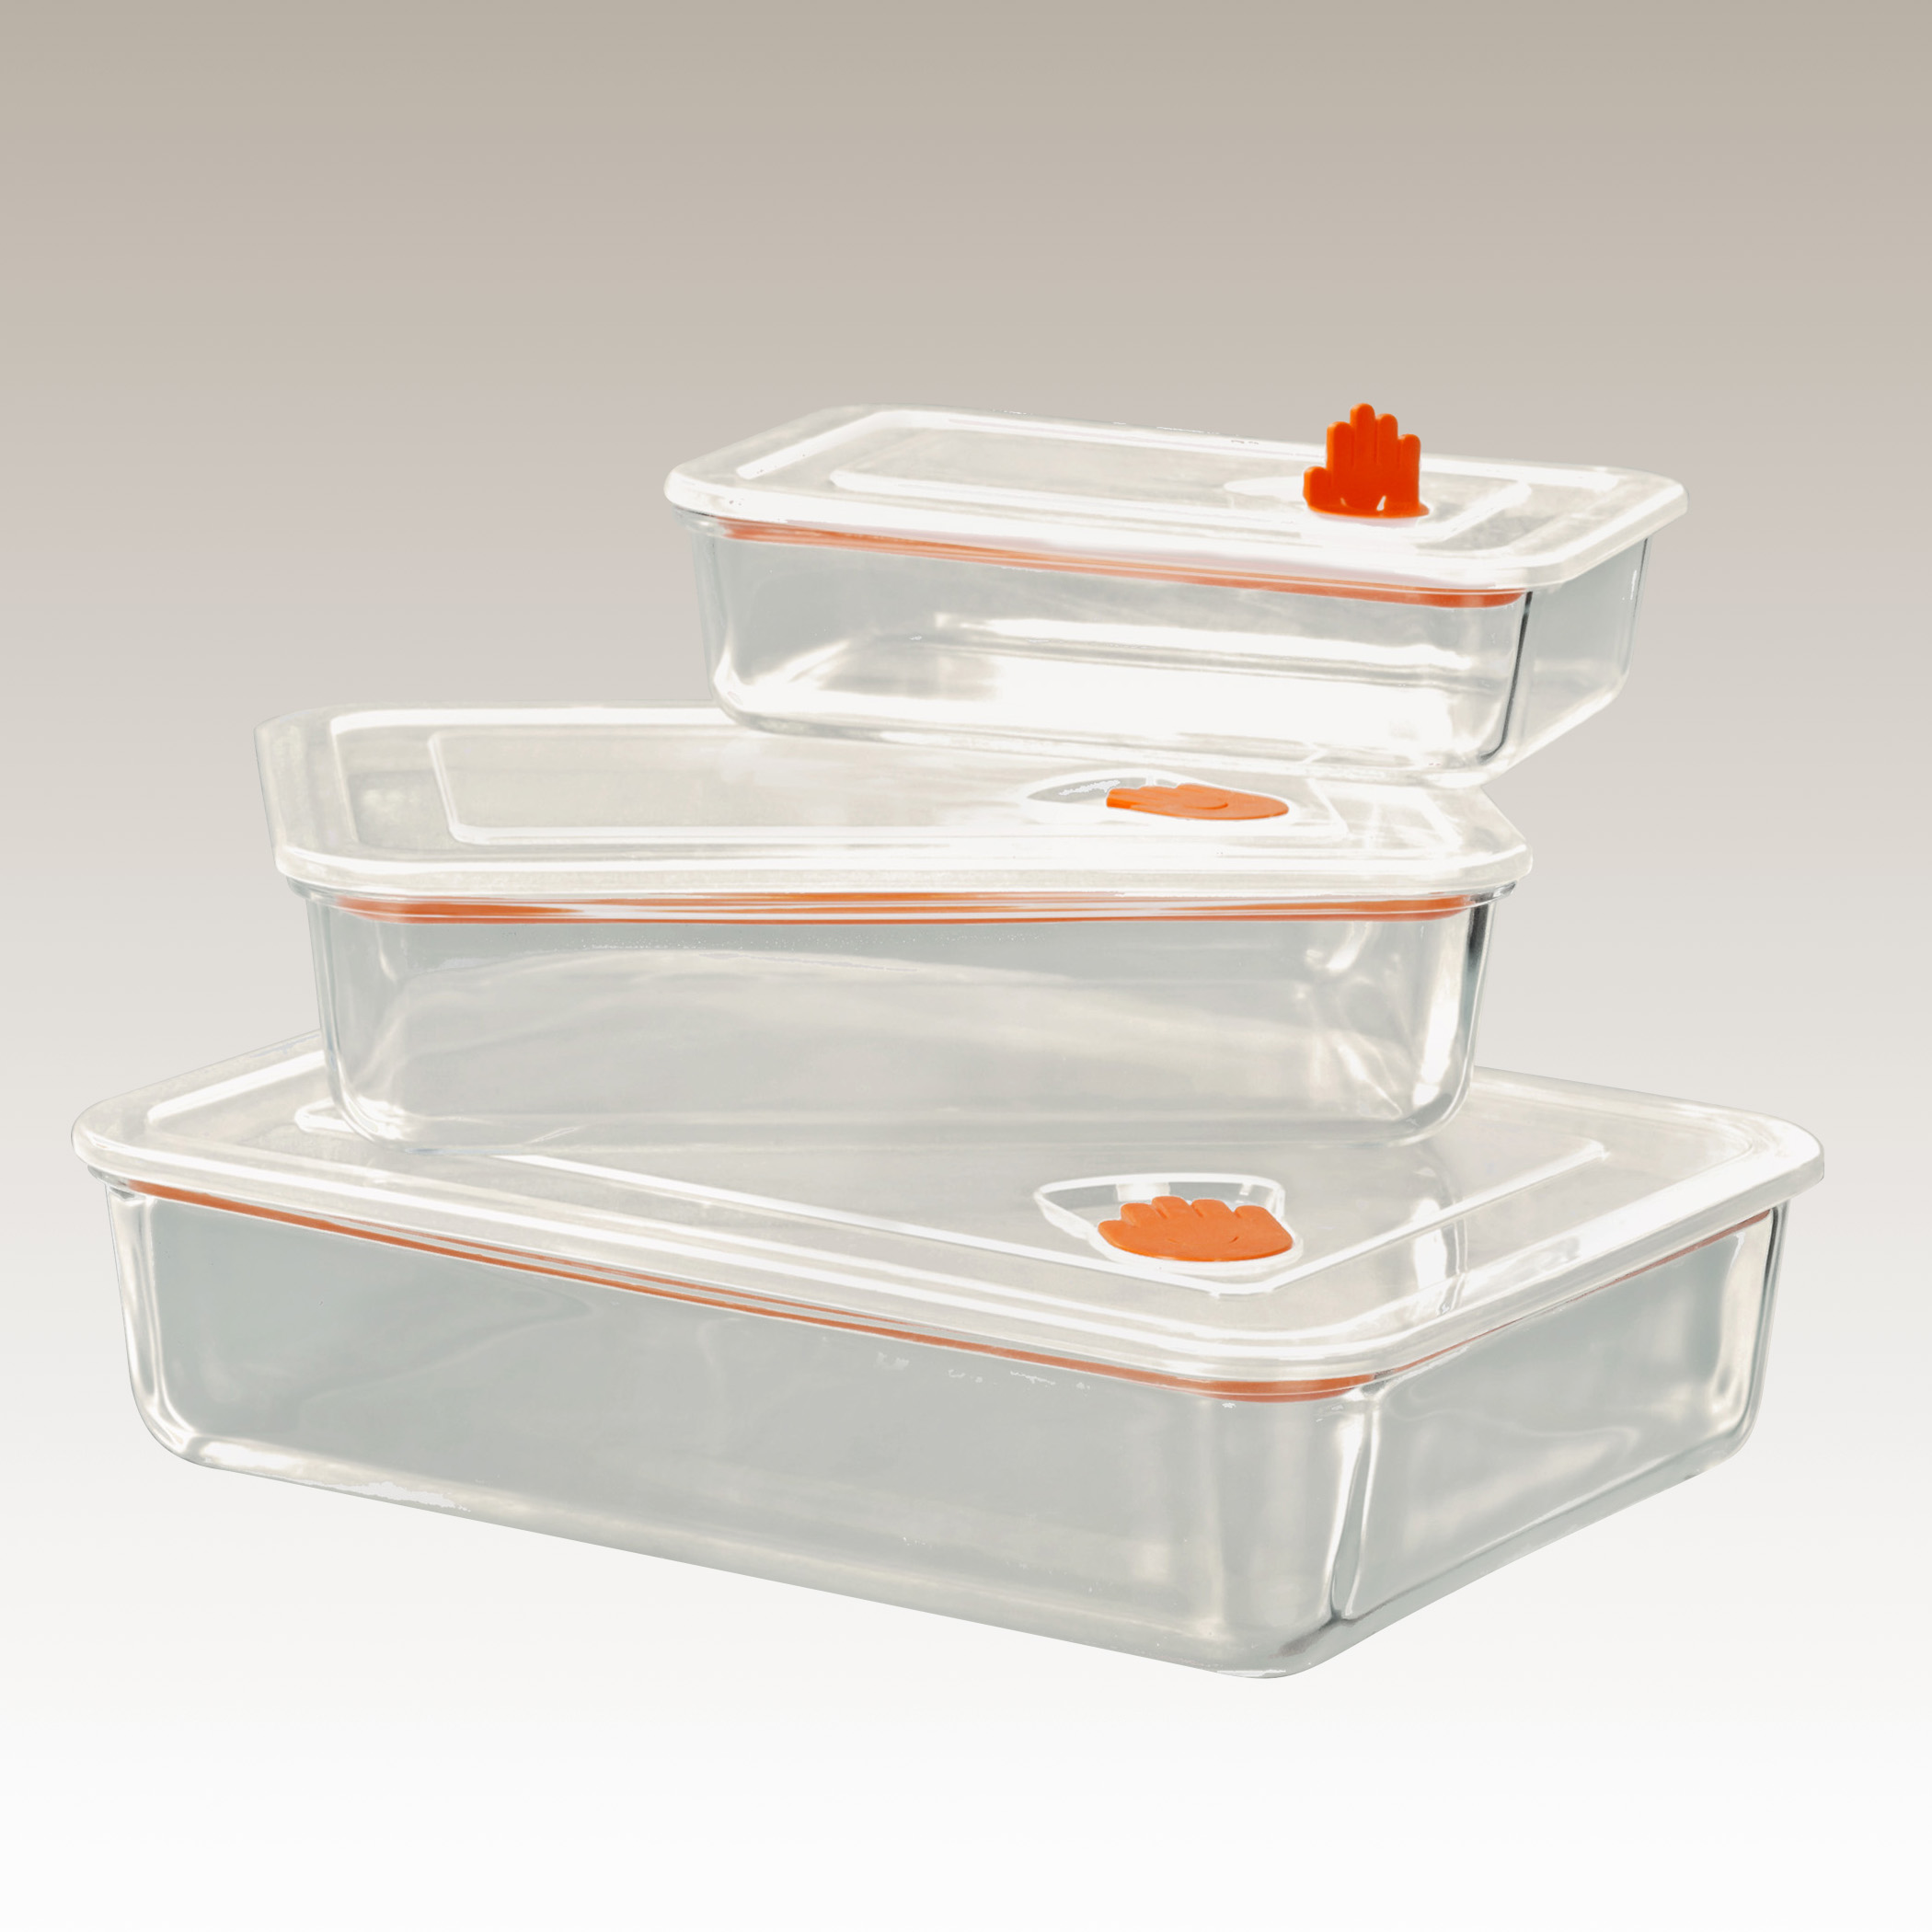 3 Piece Tempered Glass Storage Set by STAX LIVING